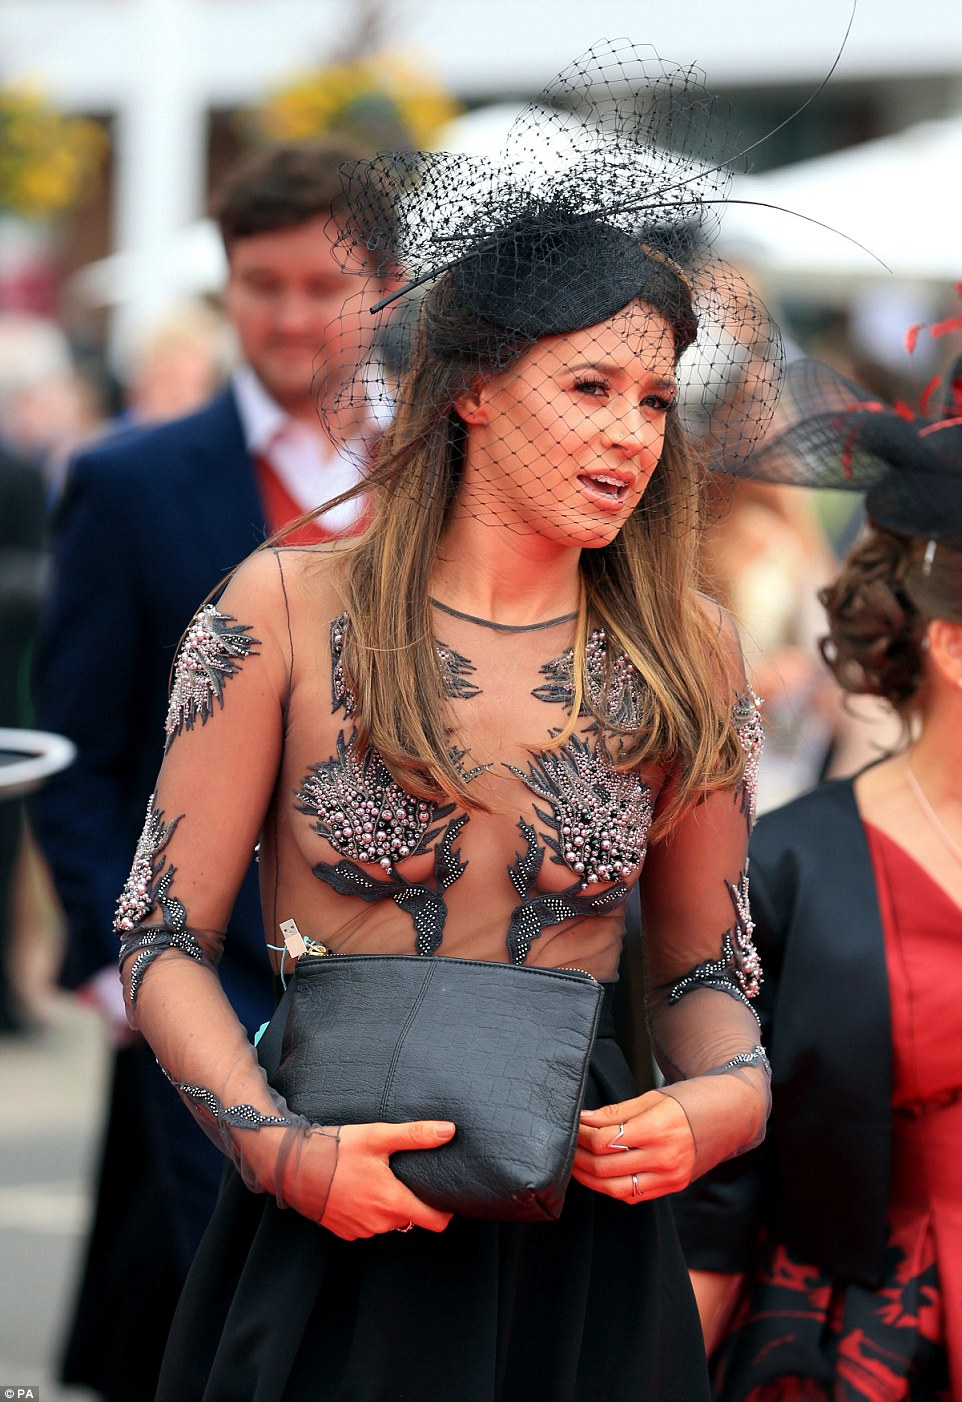 A woman made a brave fashion choice in a sheer top with strategically placed embellishments to protect her modesty